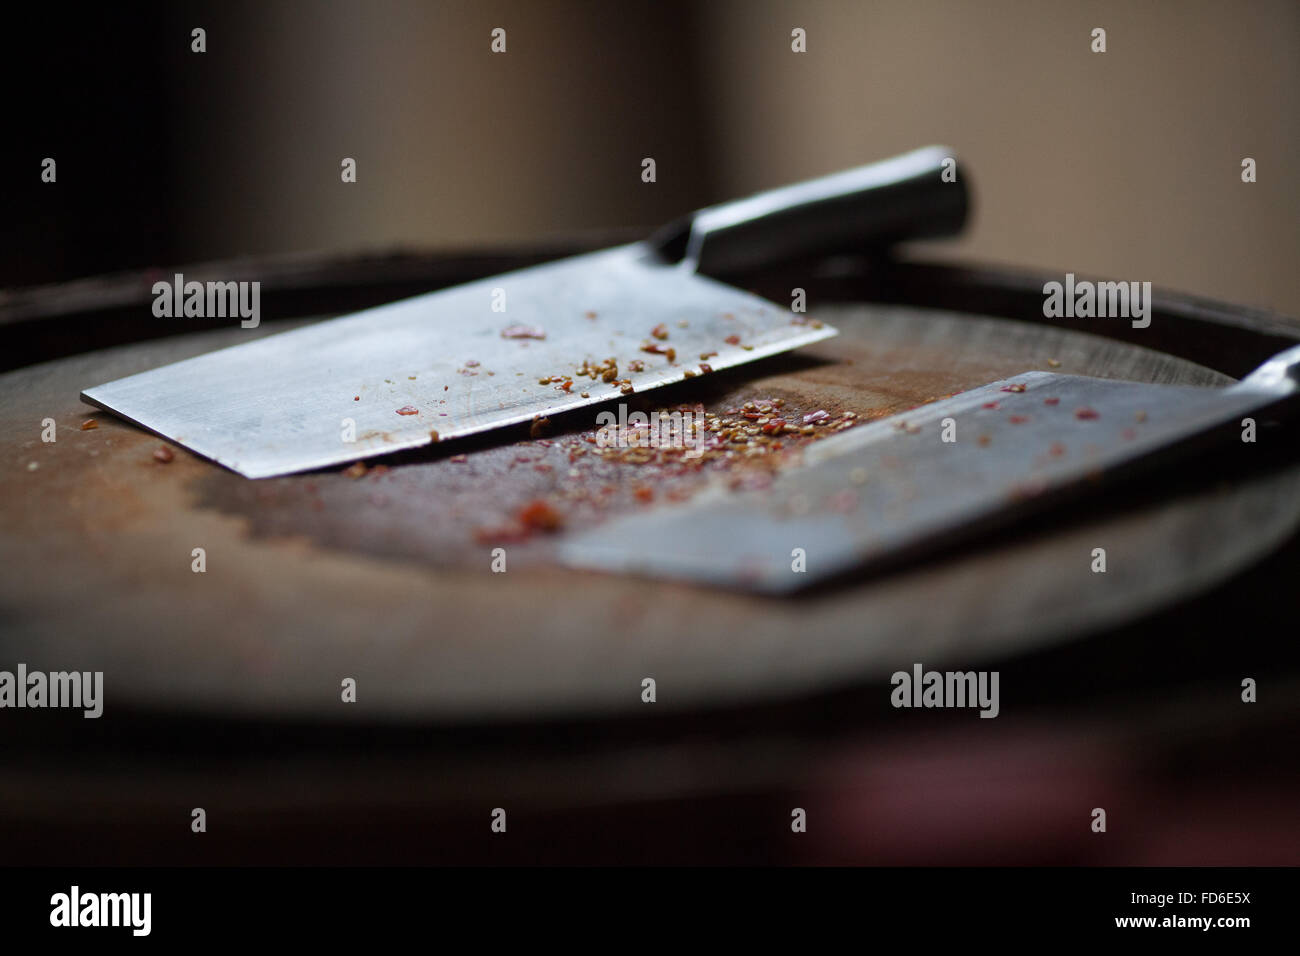 Close-Up Of Butcher Knife On Table - Stock Image